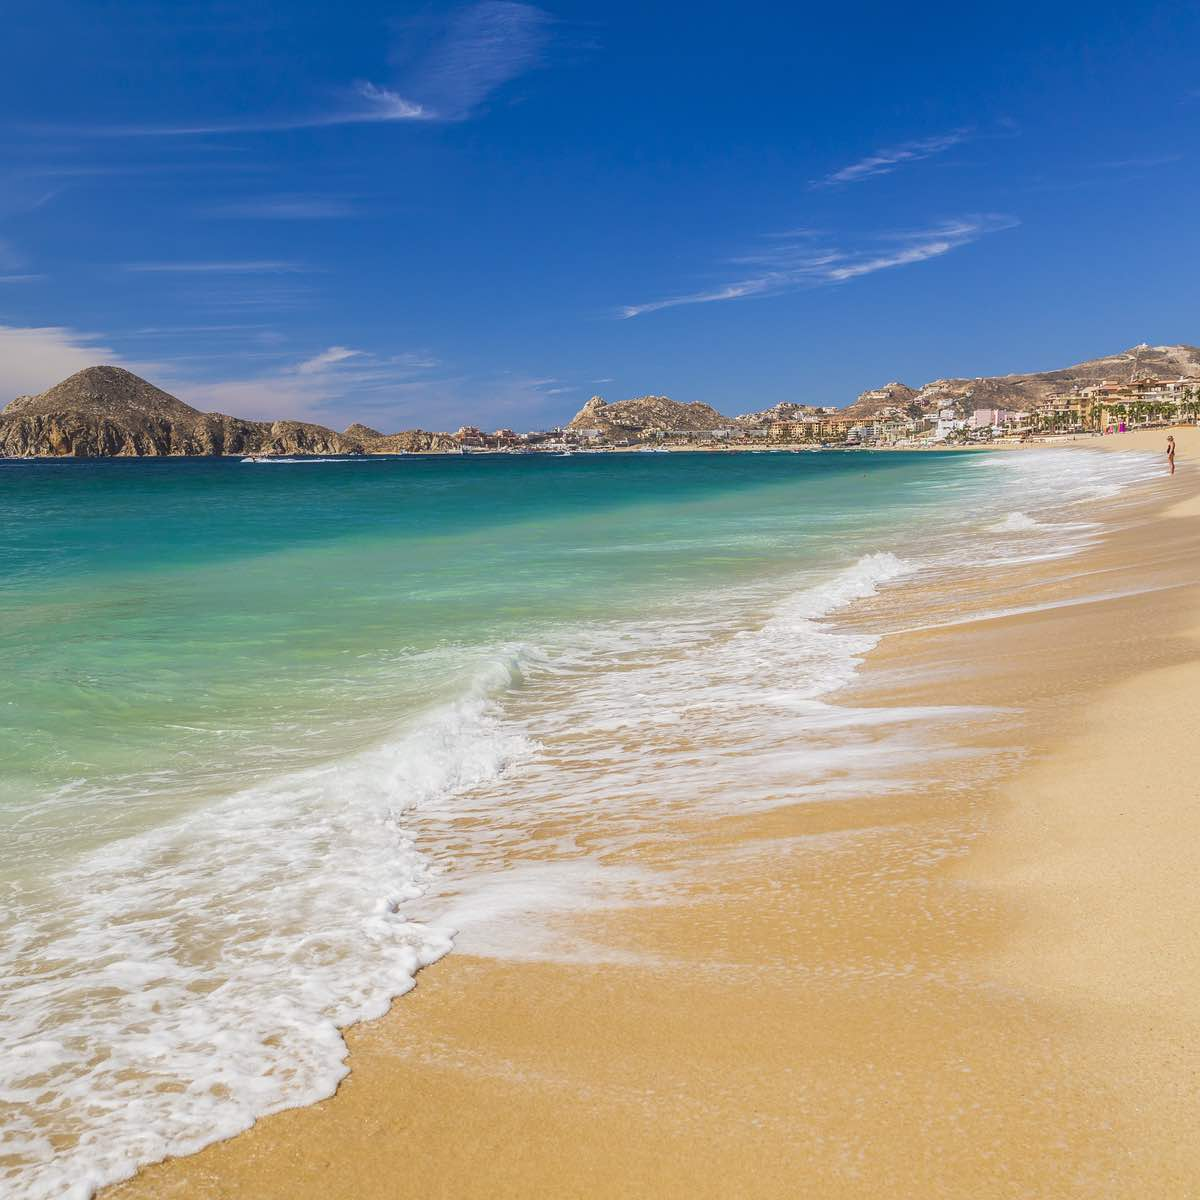 One of the most famous Cabo beaches